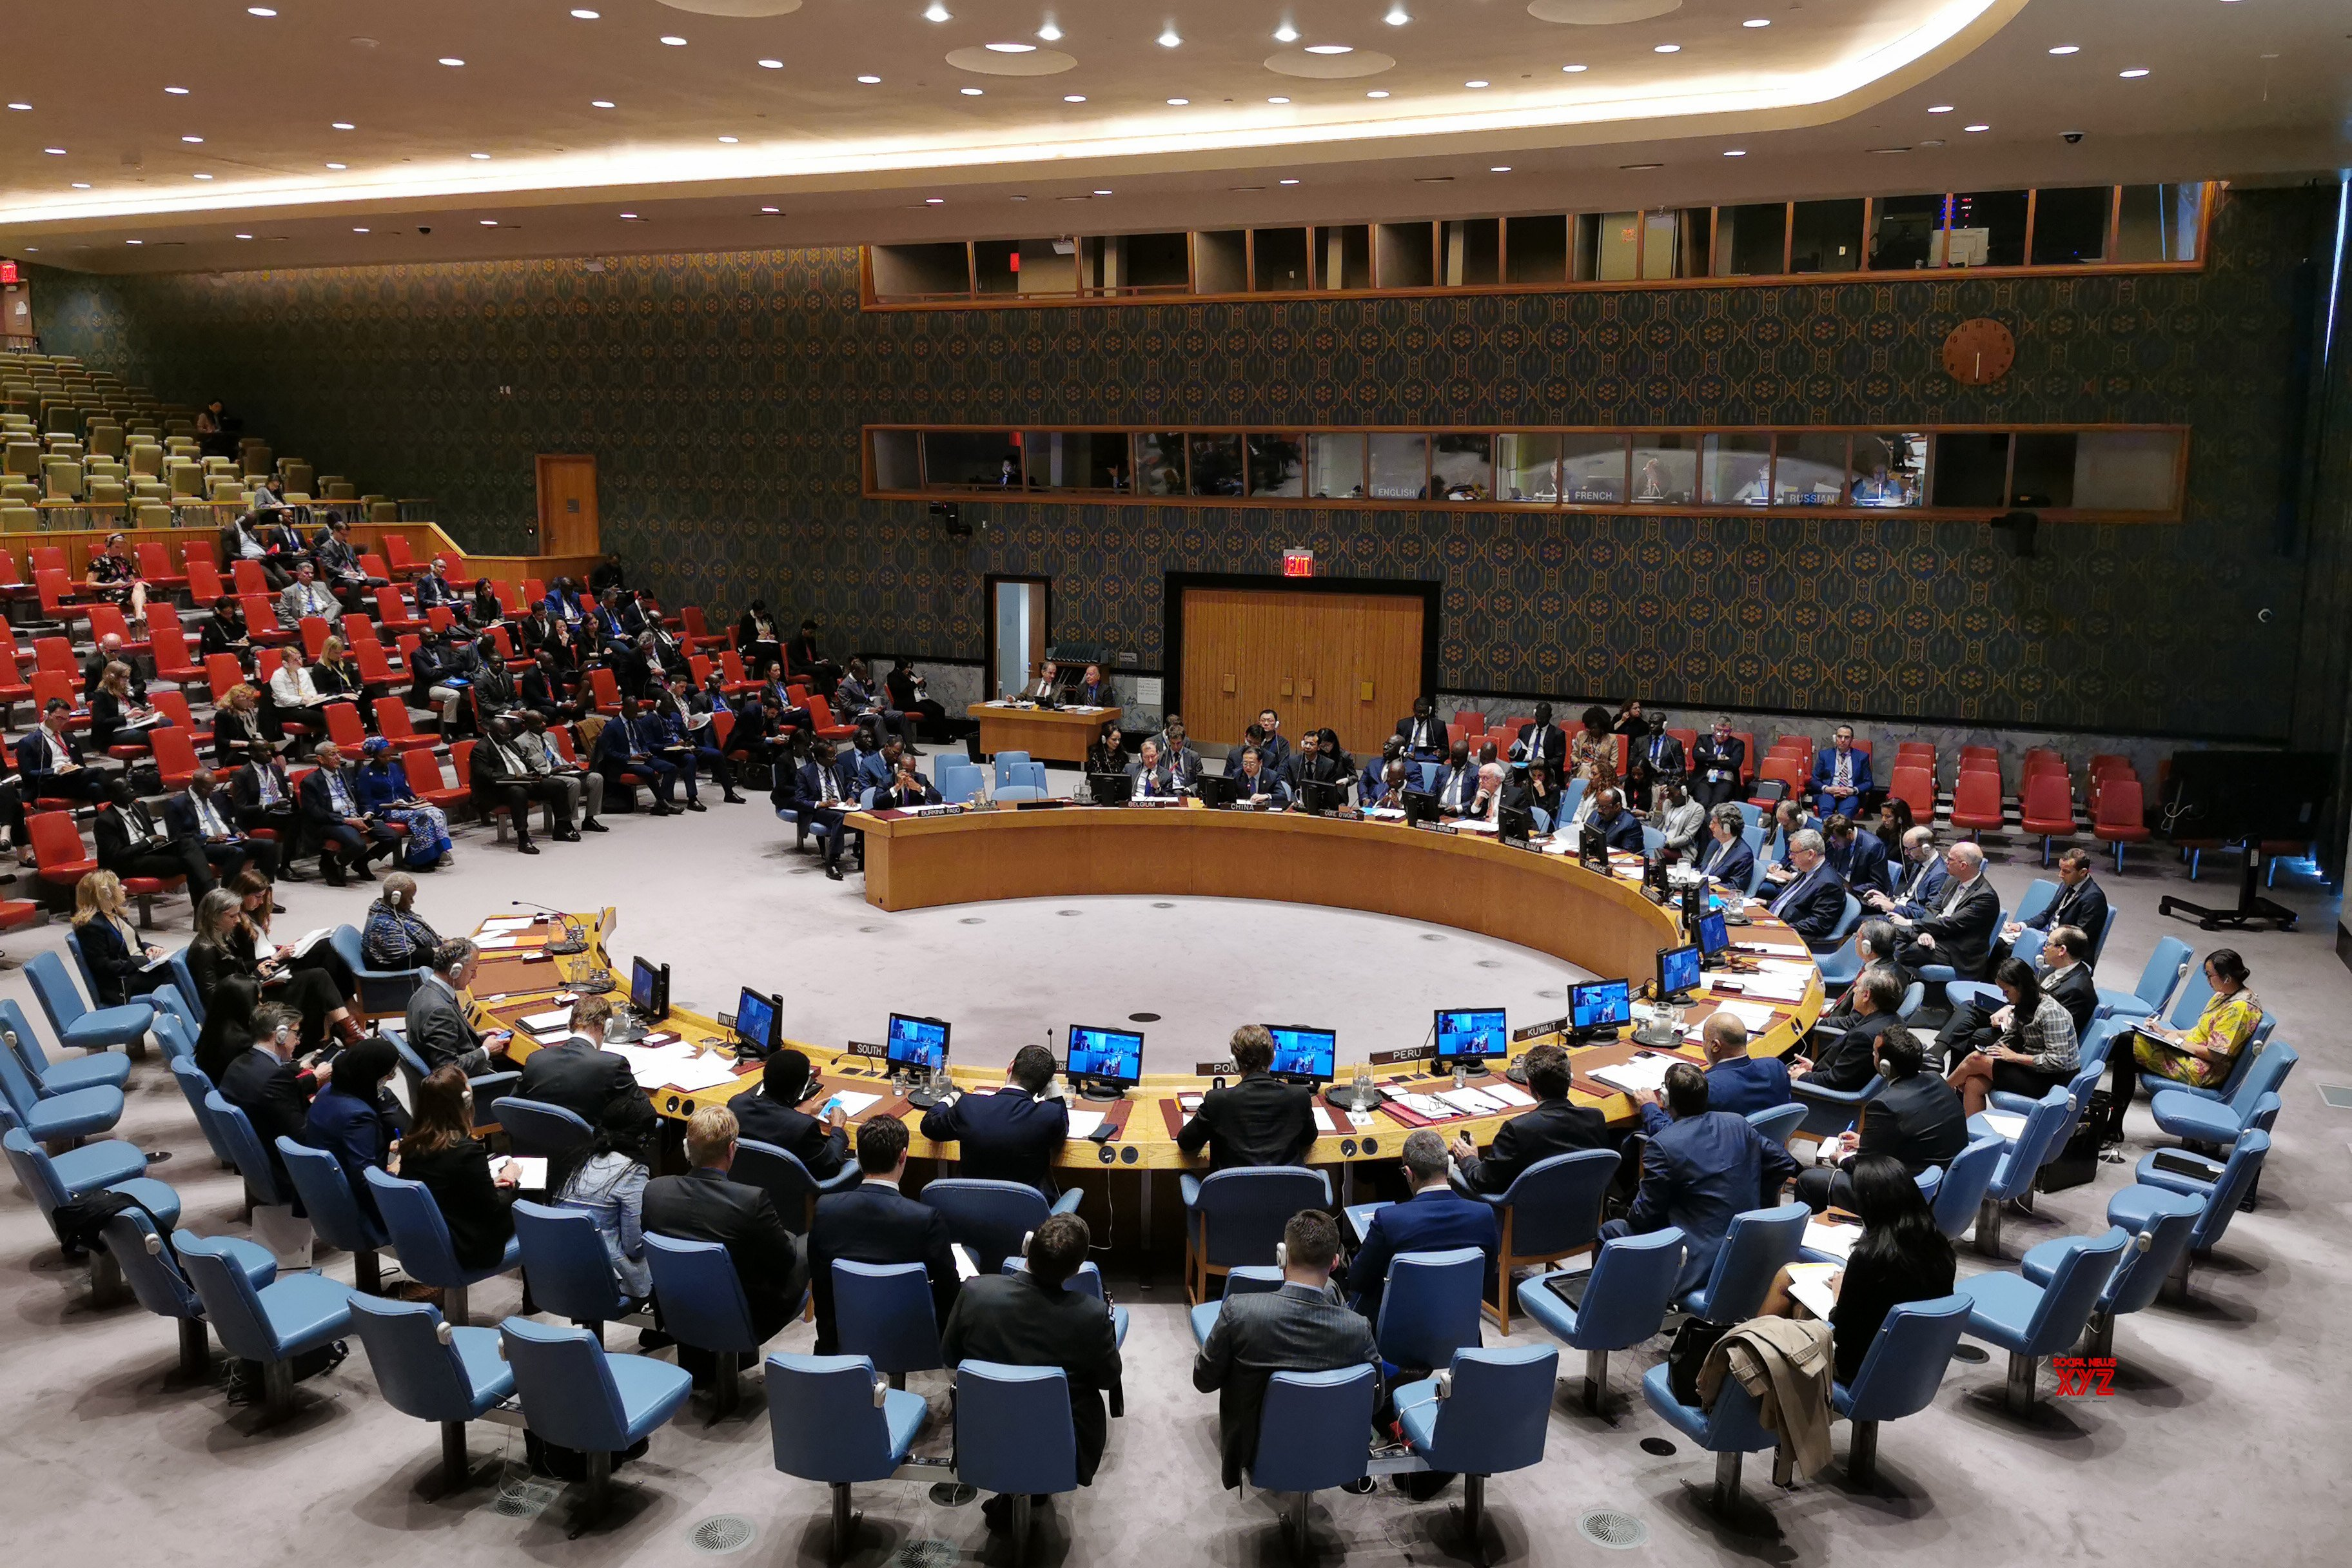 UN - SECURITY COUNCIL - MEETING - AFRICA #Gallery